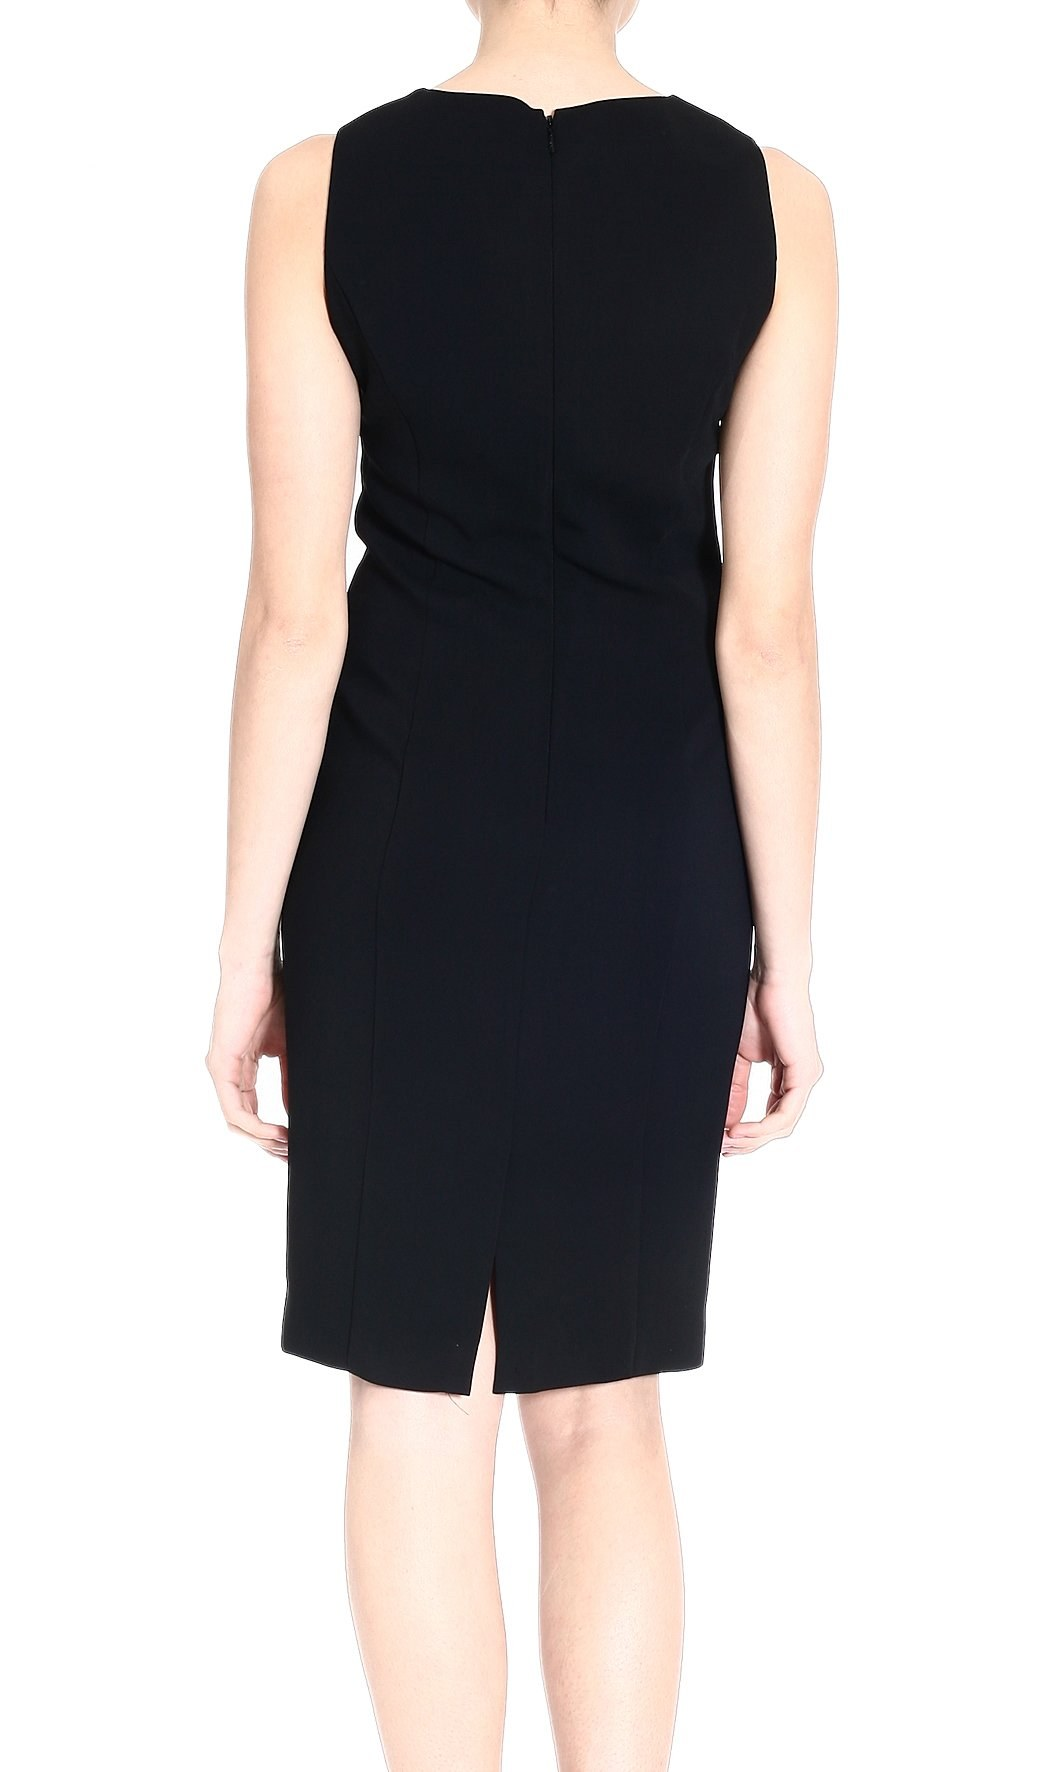 versace embroidered eyelet detail dress in black lyst